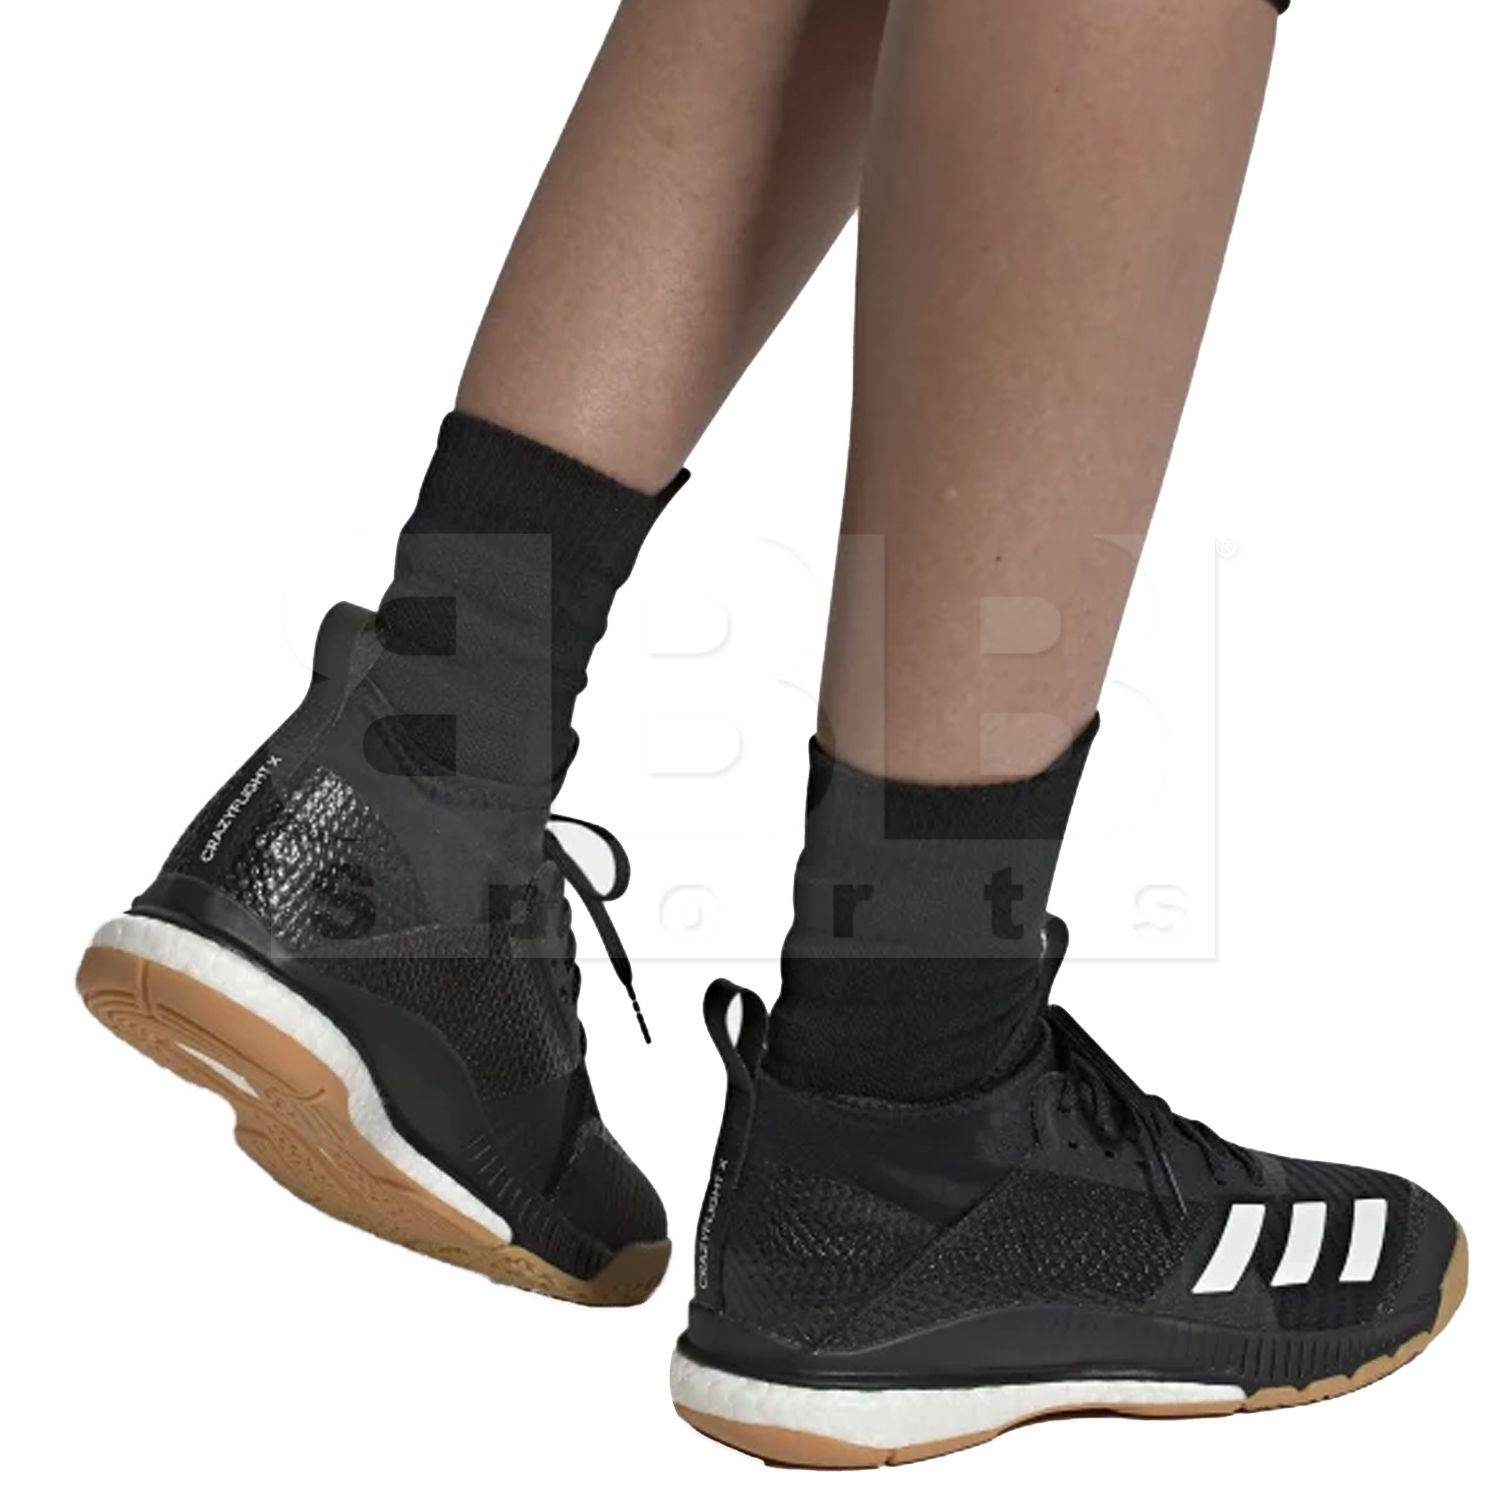 Adidas Crazyflight X 3 Mid Women's Shoes Black/Cloud White/Gum